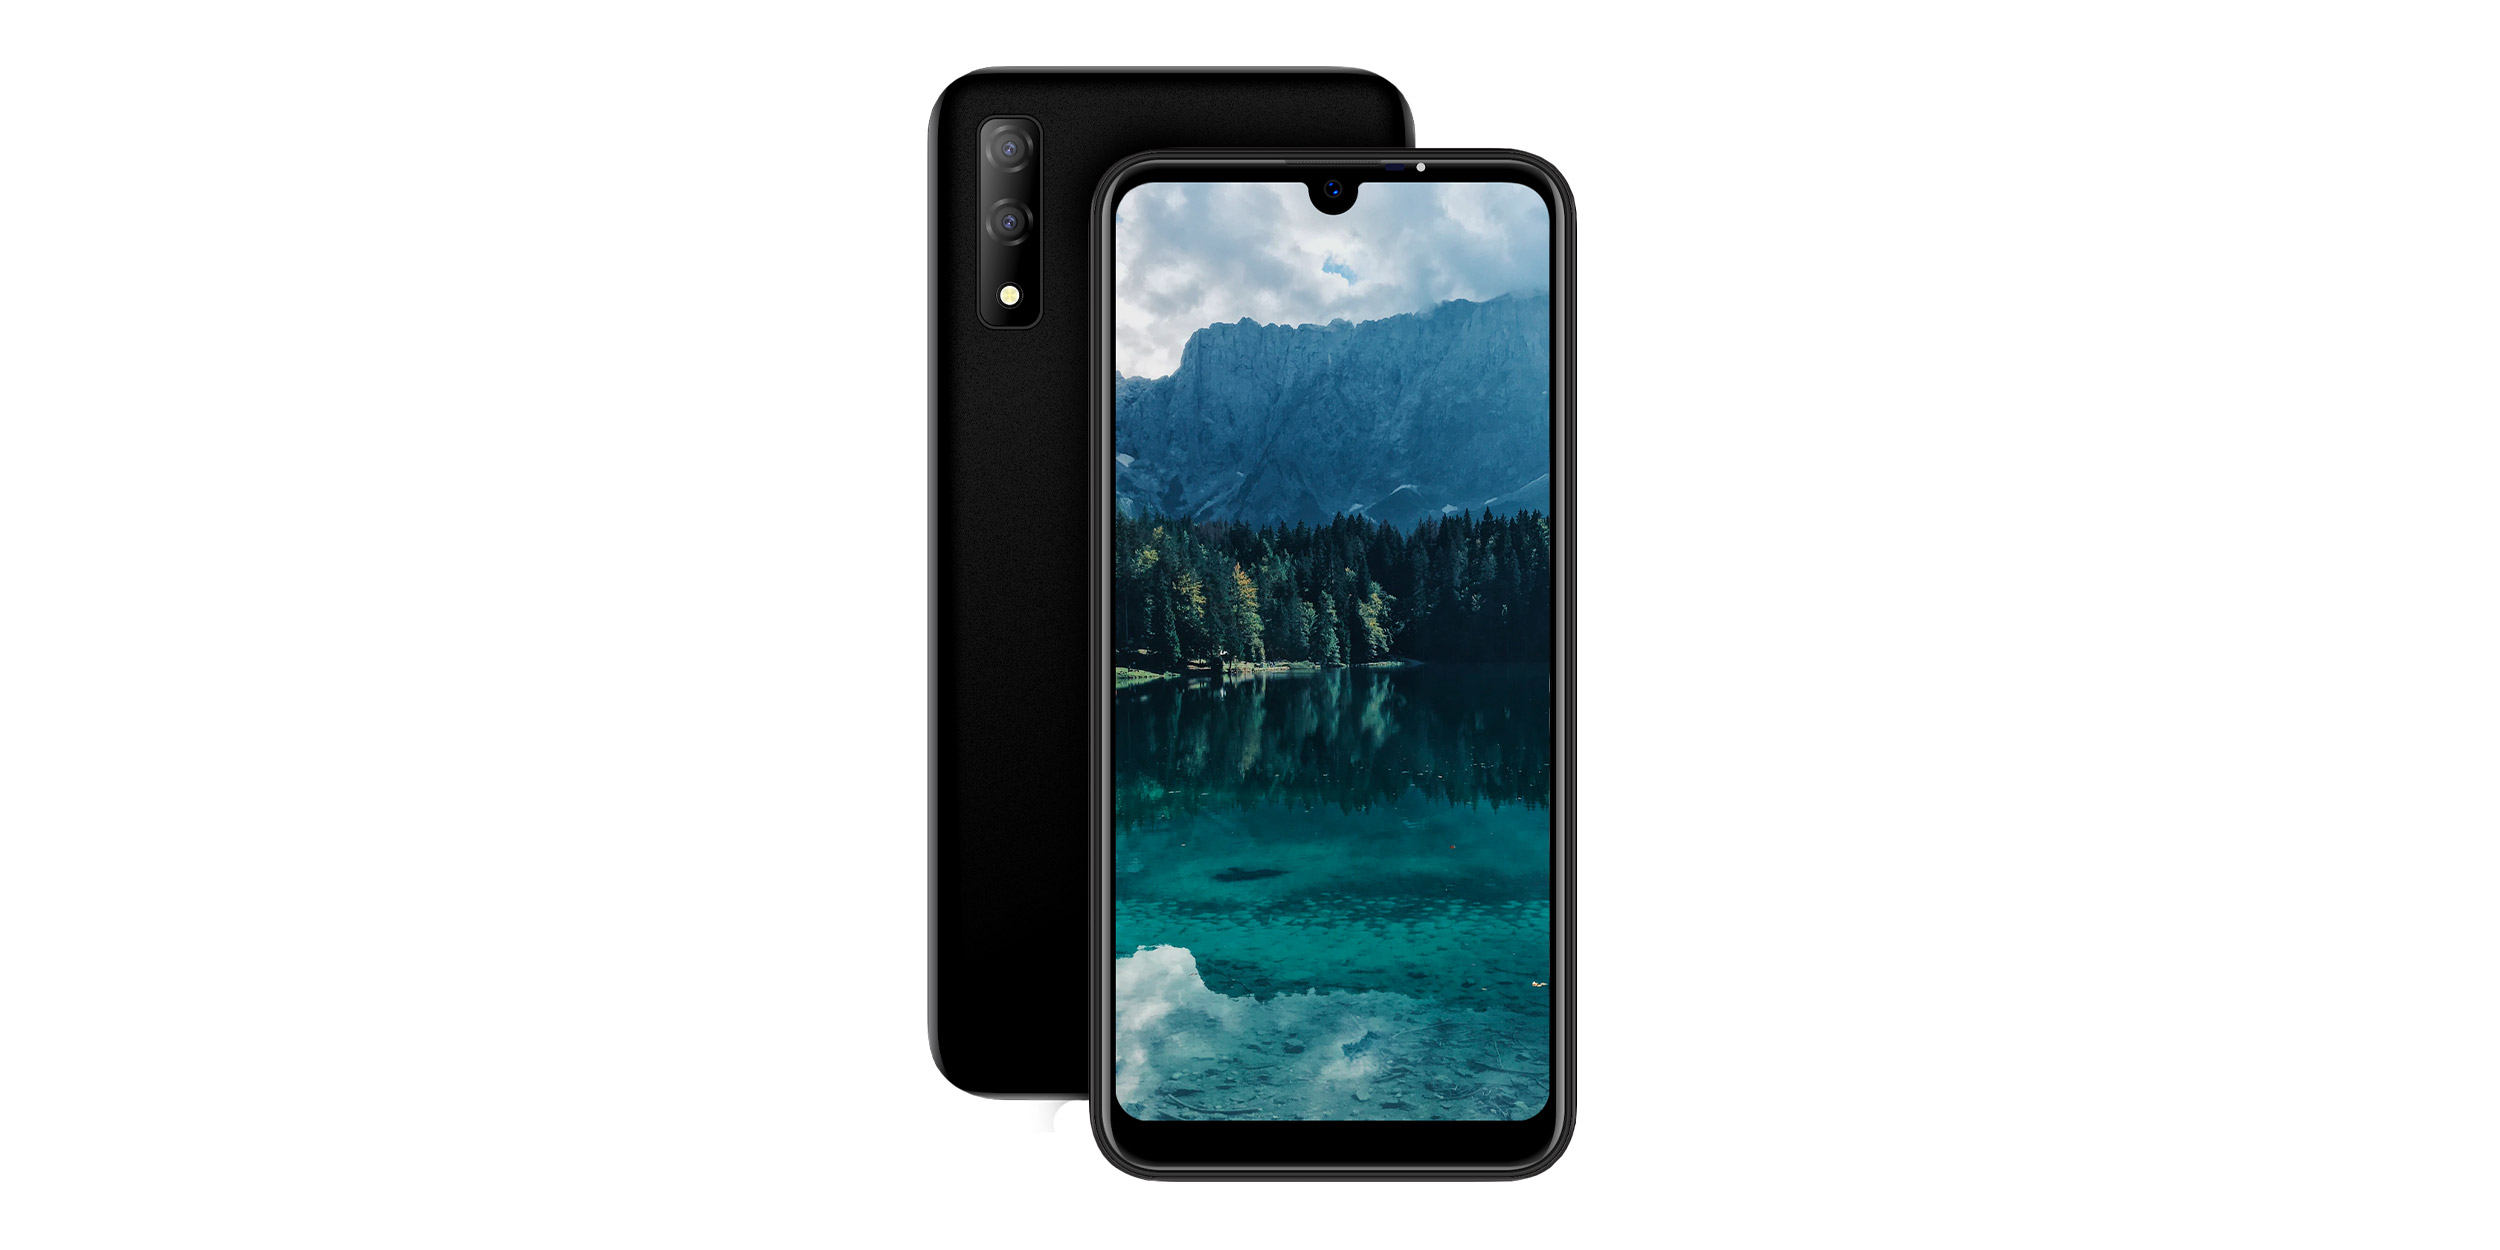 Teracube 2e launch - affordable Android phones